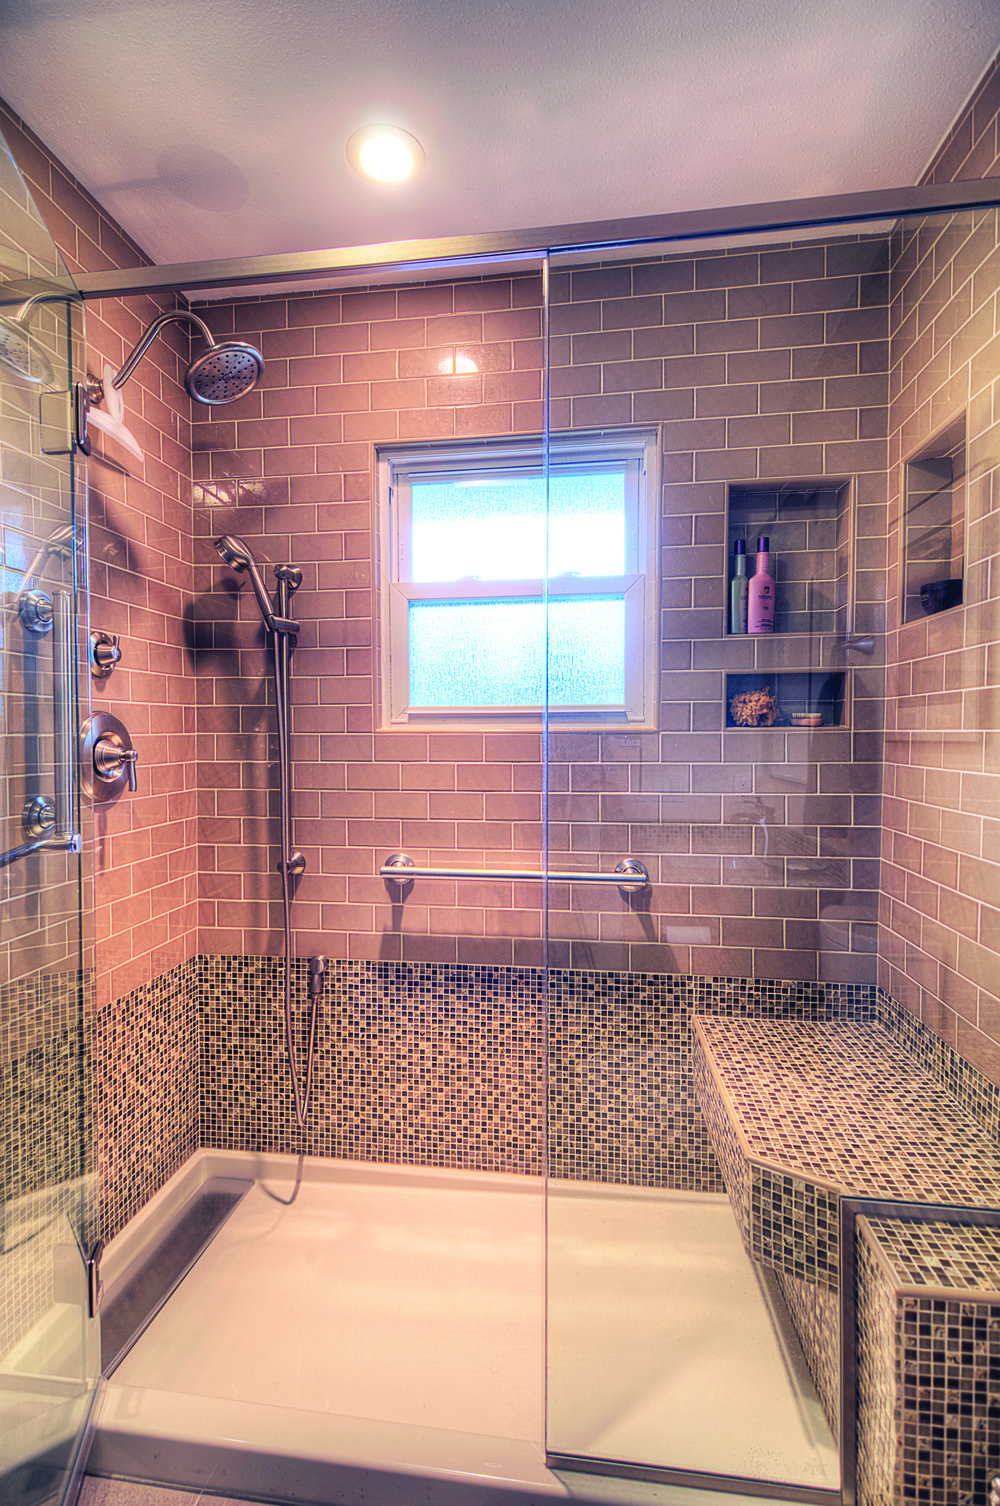 RHT Bathroom 16329 14th Ave NE Shoreline WA 98155_color corrected.jpg